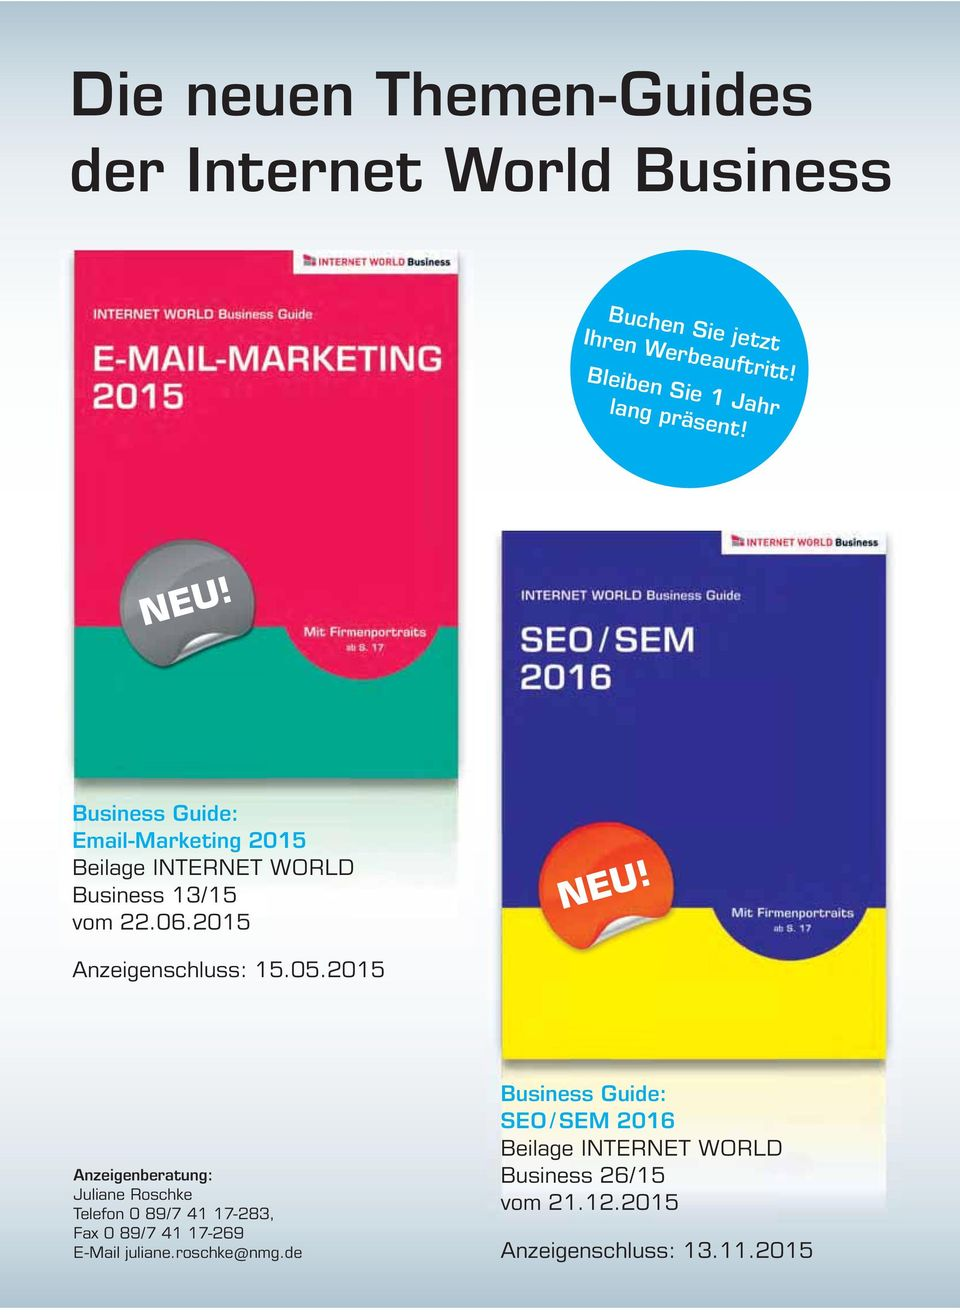 Business Guide: Email-Marketing 2015 Beilage INTERNET WORLD Business 13/15 vom 22.06.2015 NEU! Anzeigenschluss: 15.05.